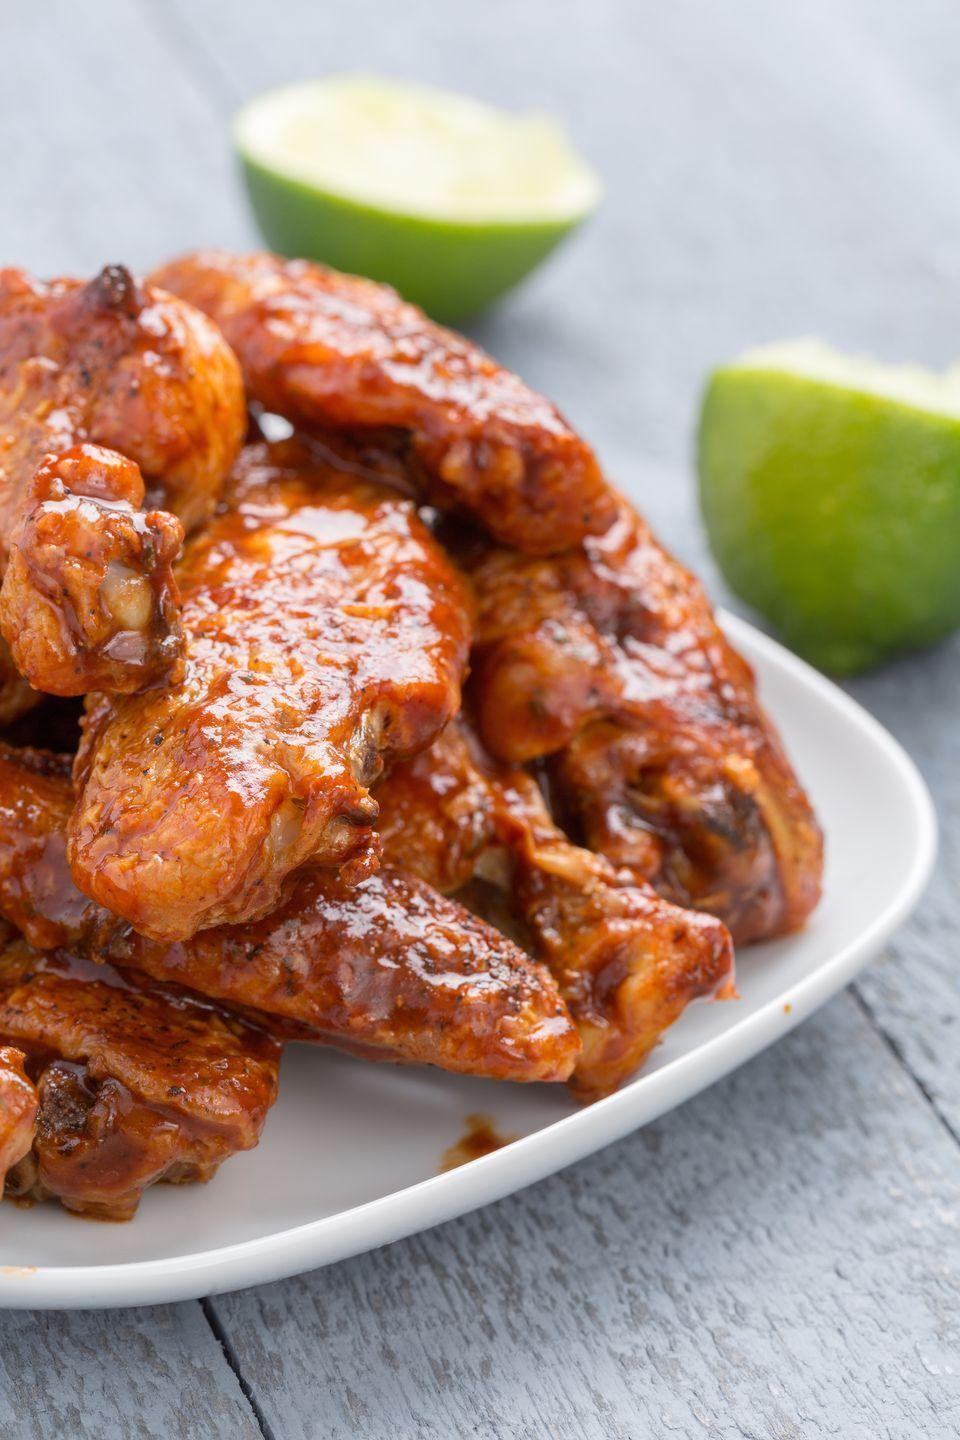 """<p>Don't underestimate the powerful heat of chipotle peppers: If you're the type who thinks Sriracha is spicy enough, these wings are not for you. Squeeze them with extra lime to tame the flame.</p><p>Get the recipe from <a href=""""/cooking/recipe-ideas/recipes/a44371/slow-cooker-chipotle-lime-chicken-wings-recipe/"""" data-ylk=""""slk:Delish"""" class=""""link rapid-noclick-resp"""">Delish</a>.</p><p><strong><em>More into the food than the game? We have the perfect <a href=""""https://shop.delish.com/products/here-for-the-food-t-shirt"""" rel=""""nofollow noopener"""" target=""""_blank"""" data-ylk=""""slk:t-shirt"""" class=""""link rapid-noclick-resp"""">t-shirt</a> for you.</em></strong></p>"""